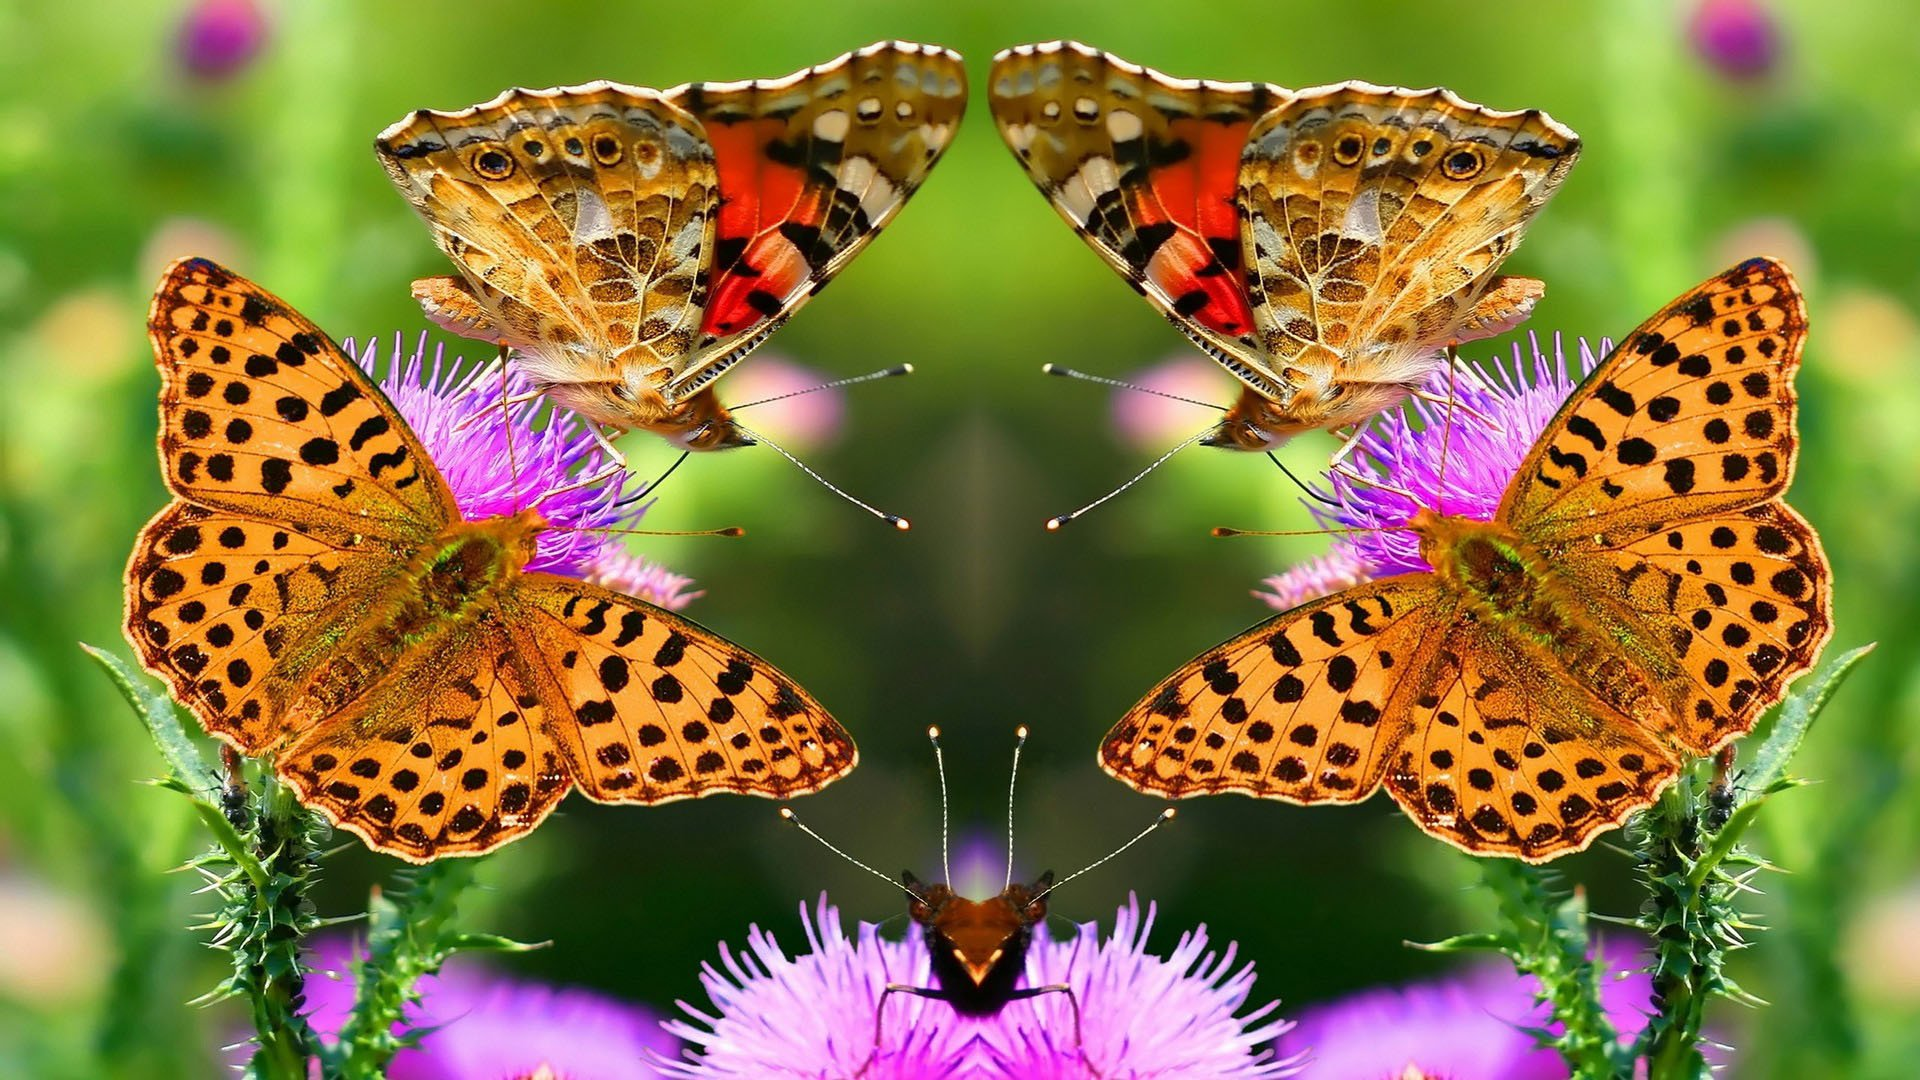 Beautiful Butterfly 8563 Wallpaper - Hd Wallpaper Nature With Animal , HD Wallpaper & Backgrounds